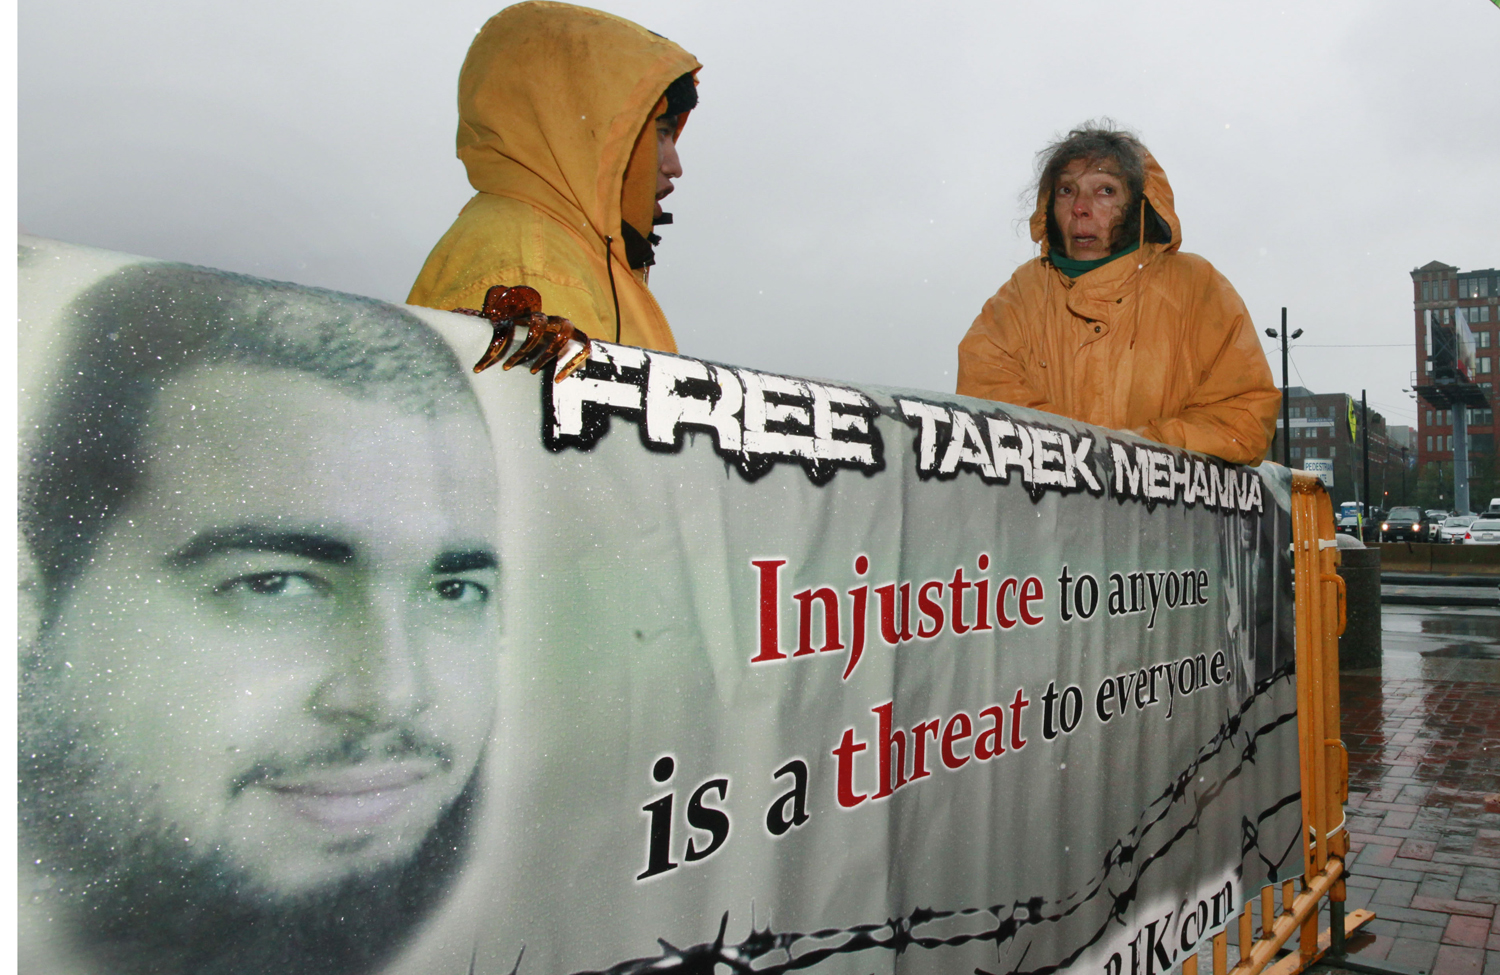 Supporters-stand-outside-of-US-District-Court-in-Boston-in-October-2011-during-the-first-day-in-the-trial-of-Tarek-Mehanna-who-is-charged-with-providing-support-to-a-terrorist-group.-AP-PhotoElise-Amendola